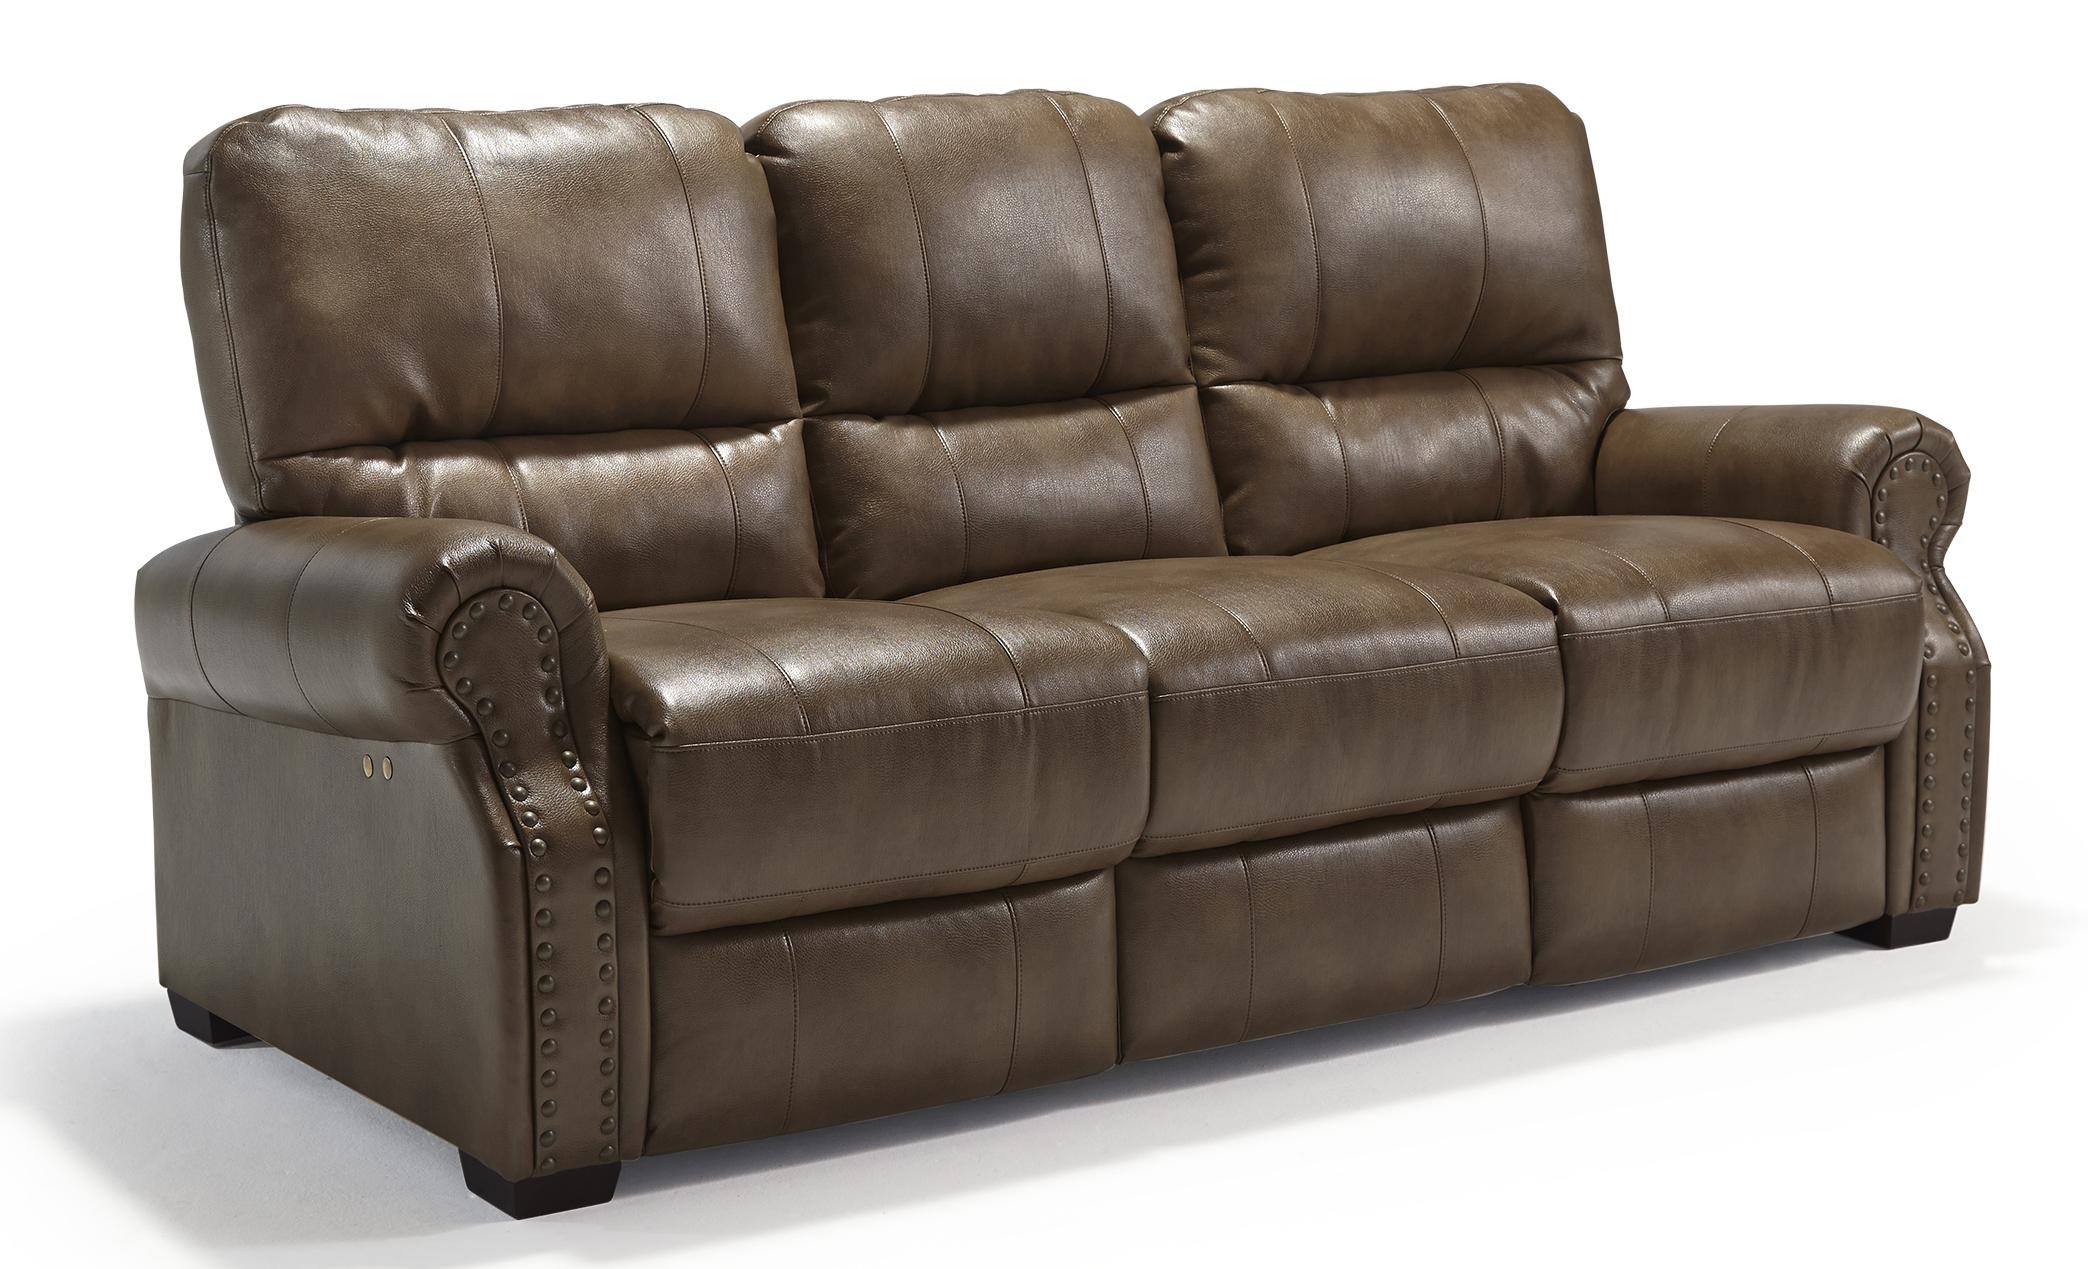 Best Home Furnishings Lander Transitional Power Reclining Sofa with Rolled Arms and Nailhead Studs  sc 1 st  Wayside Furniture & Best Home Furnishings Lander Transitional Power Reclining Sofa ... islam-shia.org